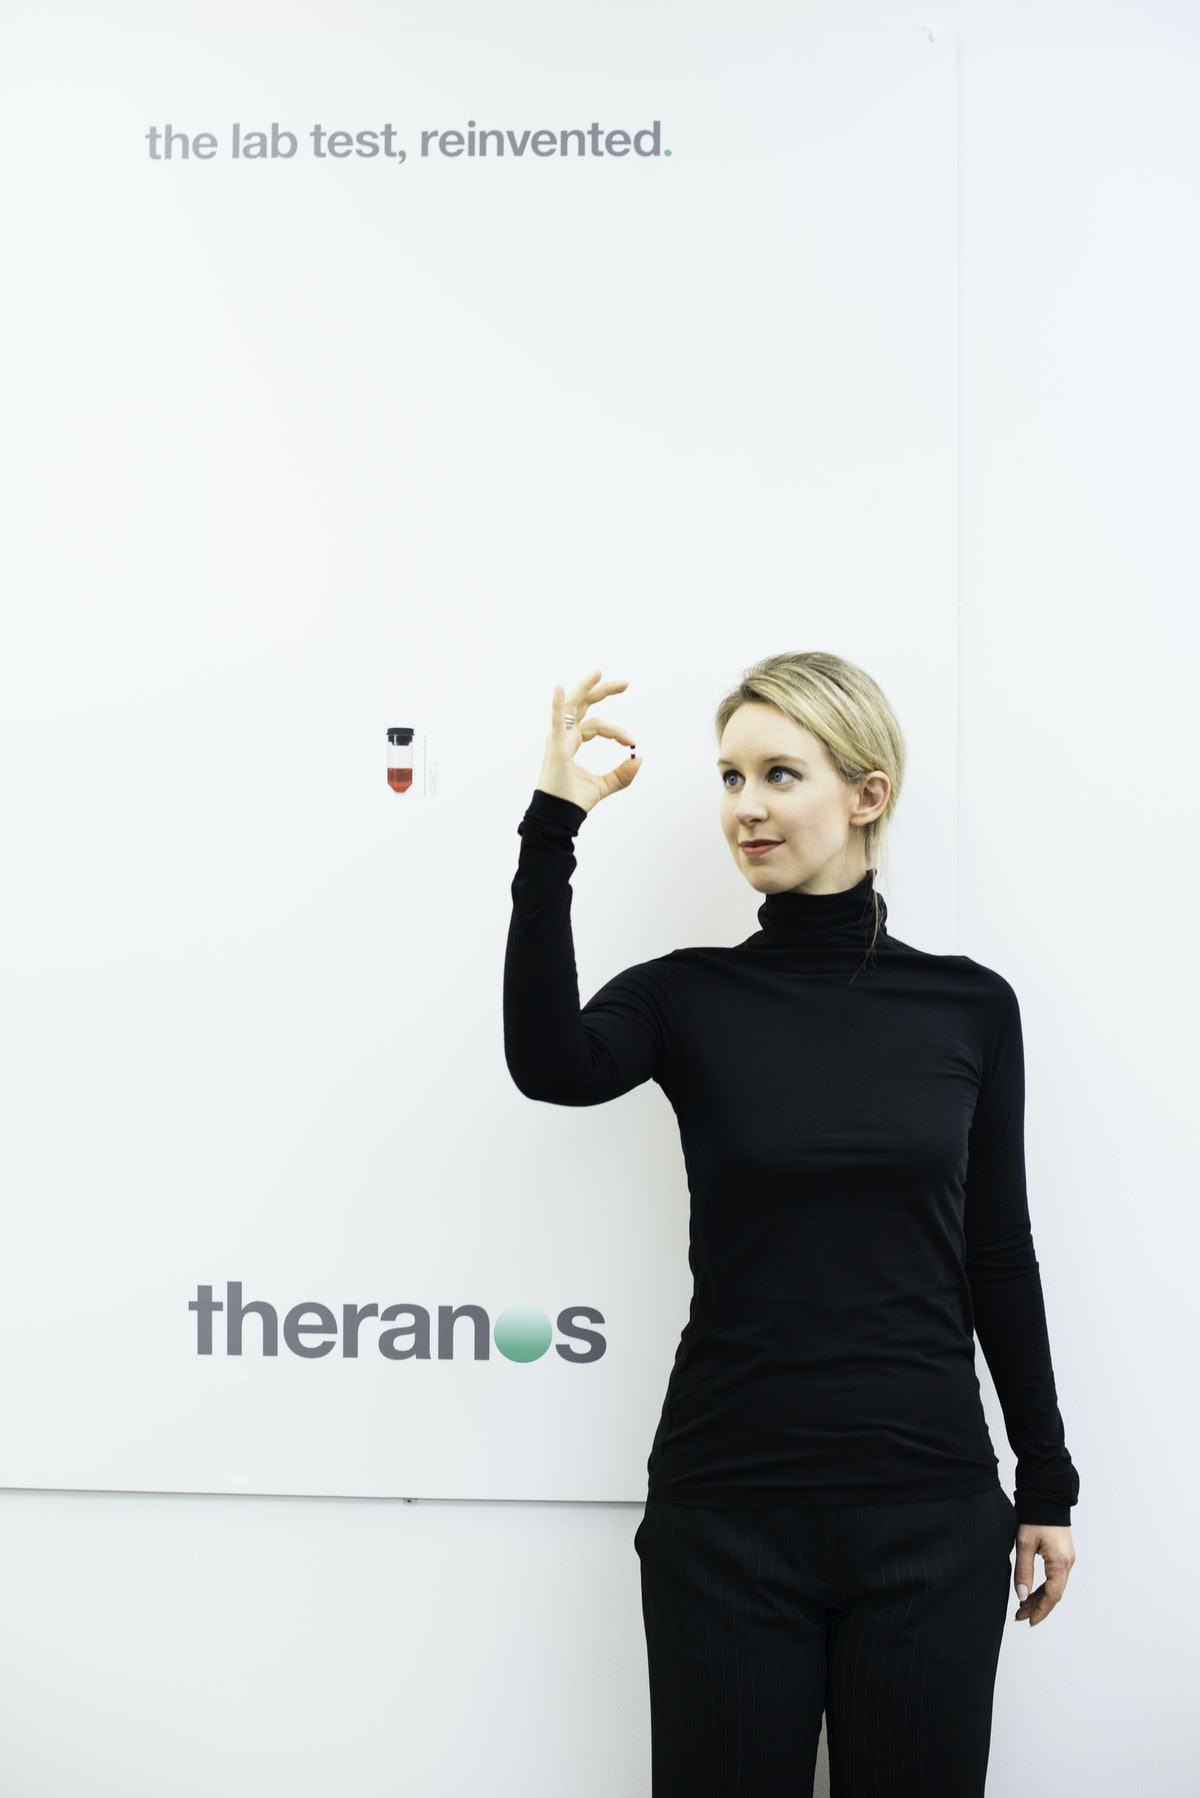 Will Elizabeth Holmes Go To Prison? HBO's 'The Inventor' Gives You All The Details